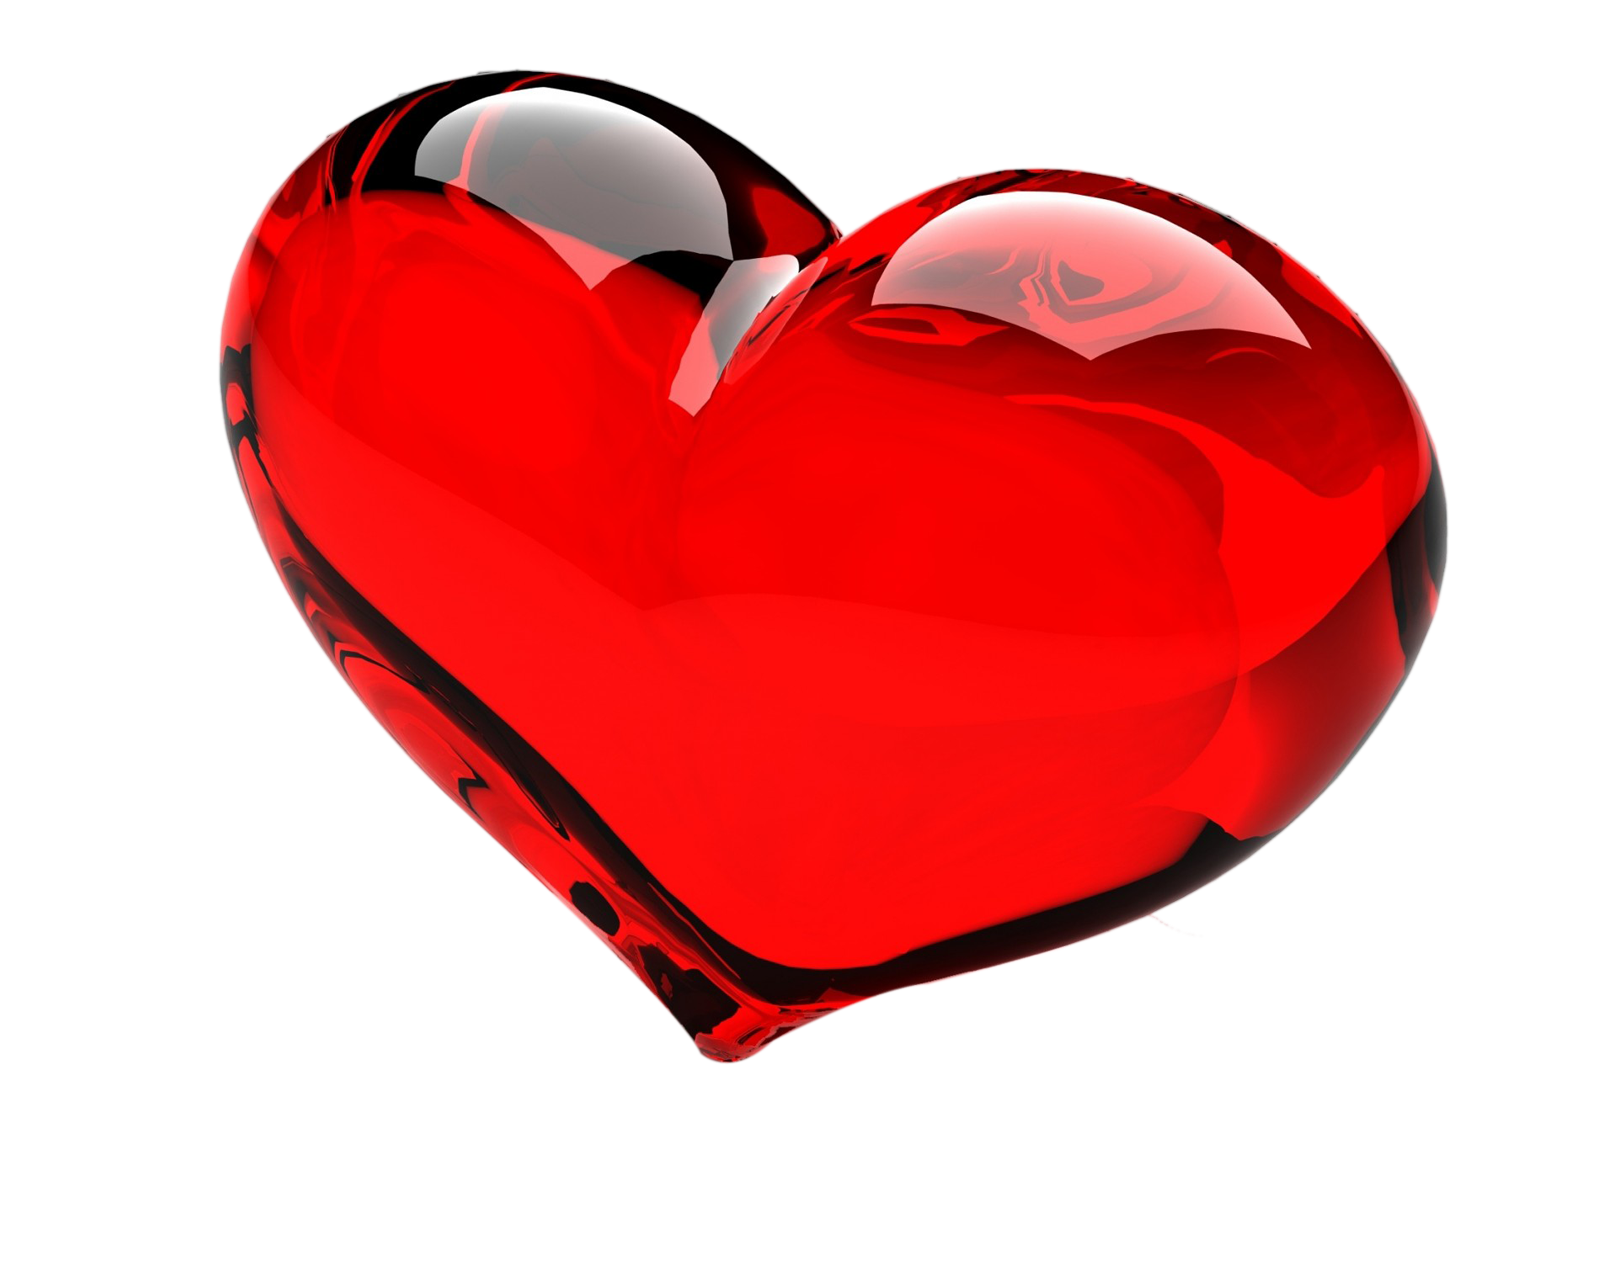 Heart png high definition. Images and clipart free